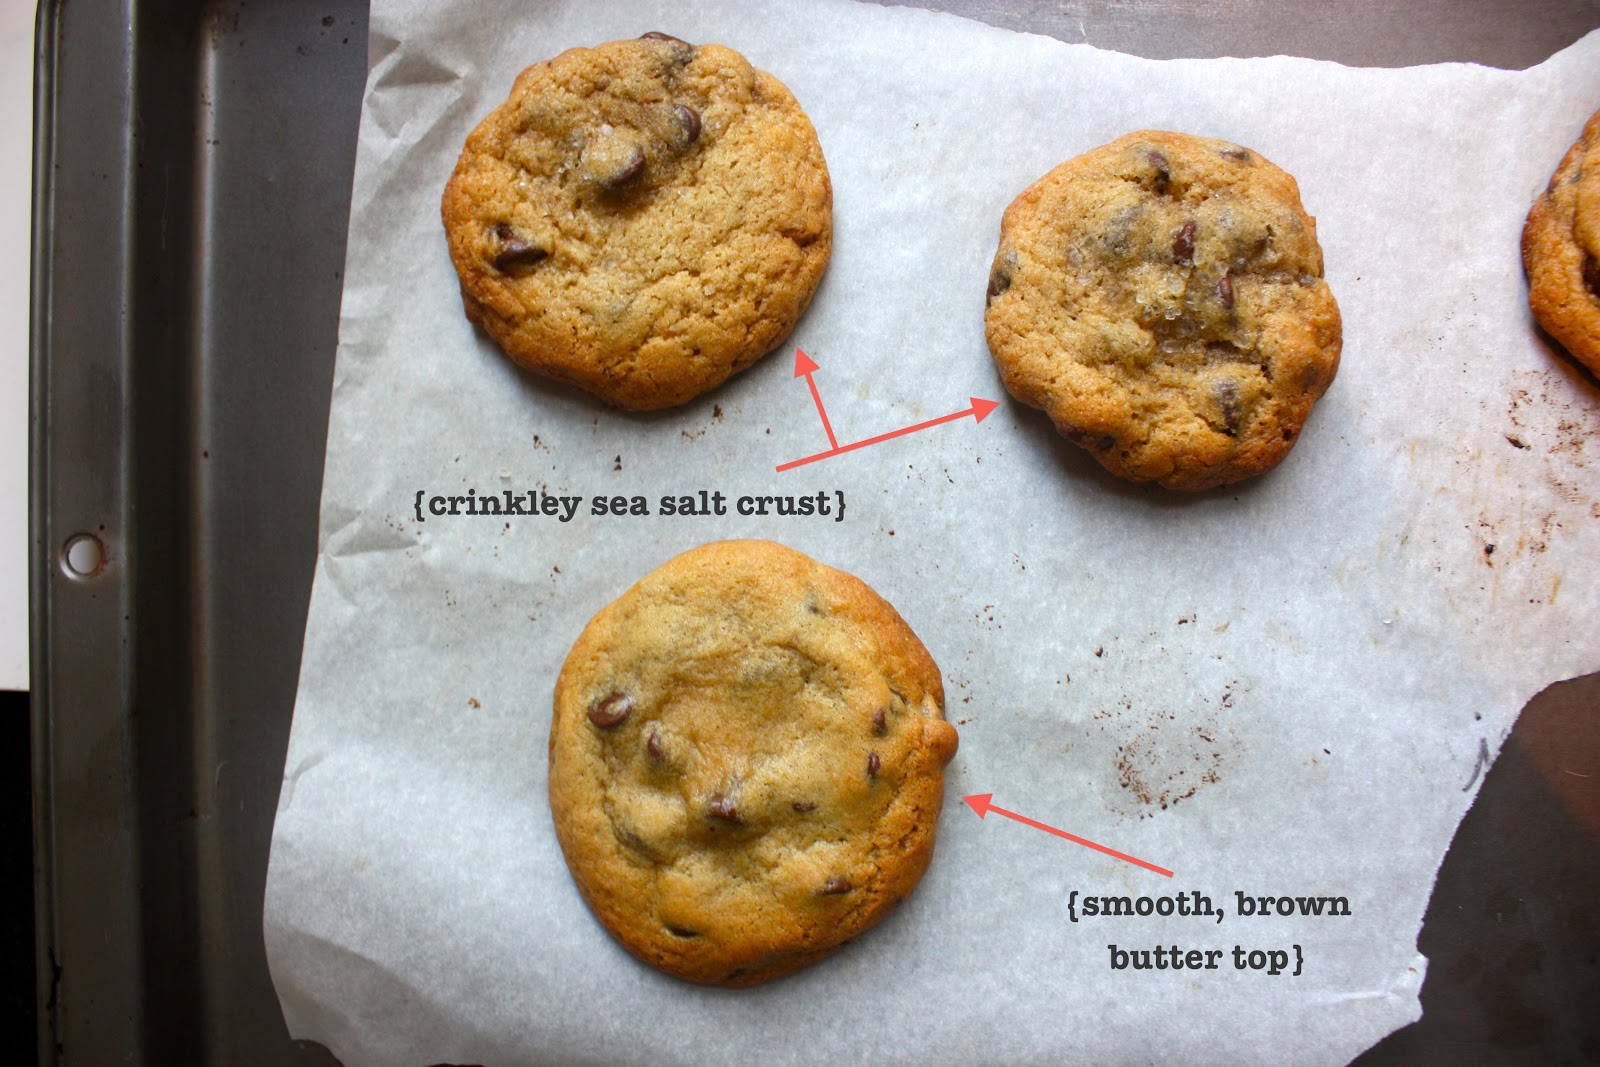 And Jacques Torres Secret Chocolate Chip Cookie Recipe From The Ny Times Both Of These Come From Reputable Sources And Both Have Convincing Evidence